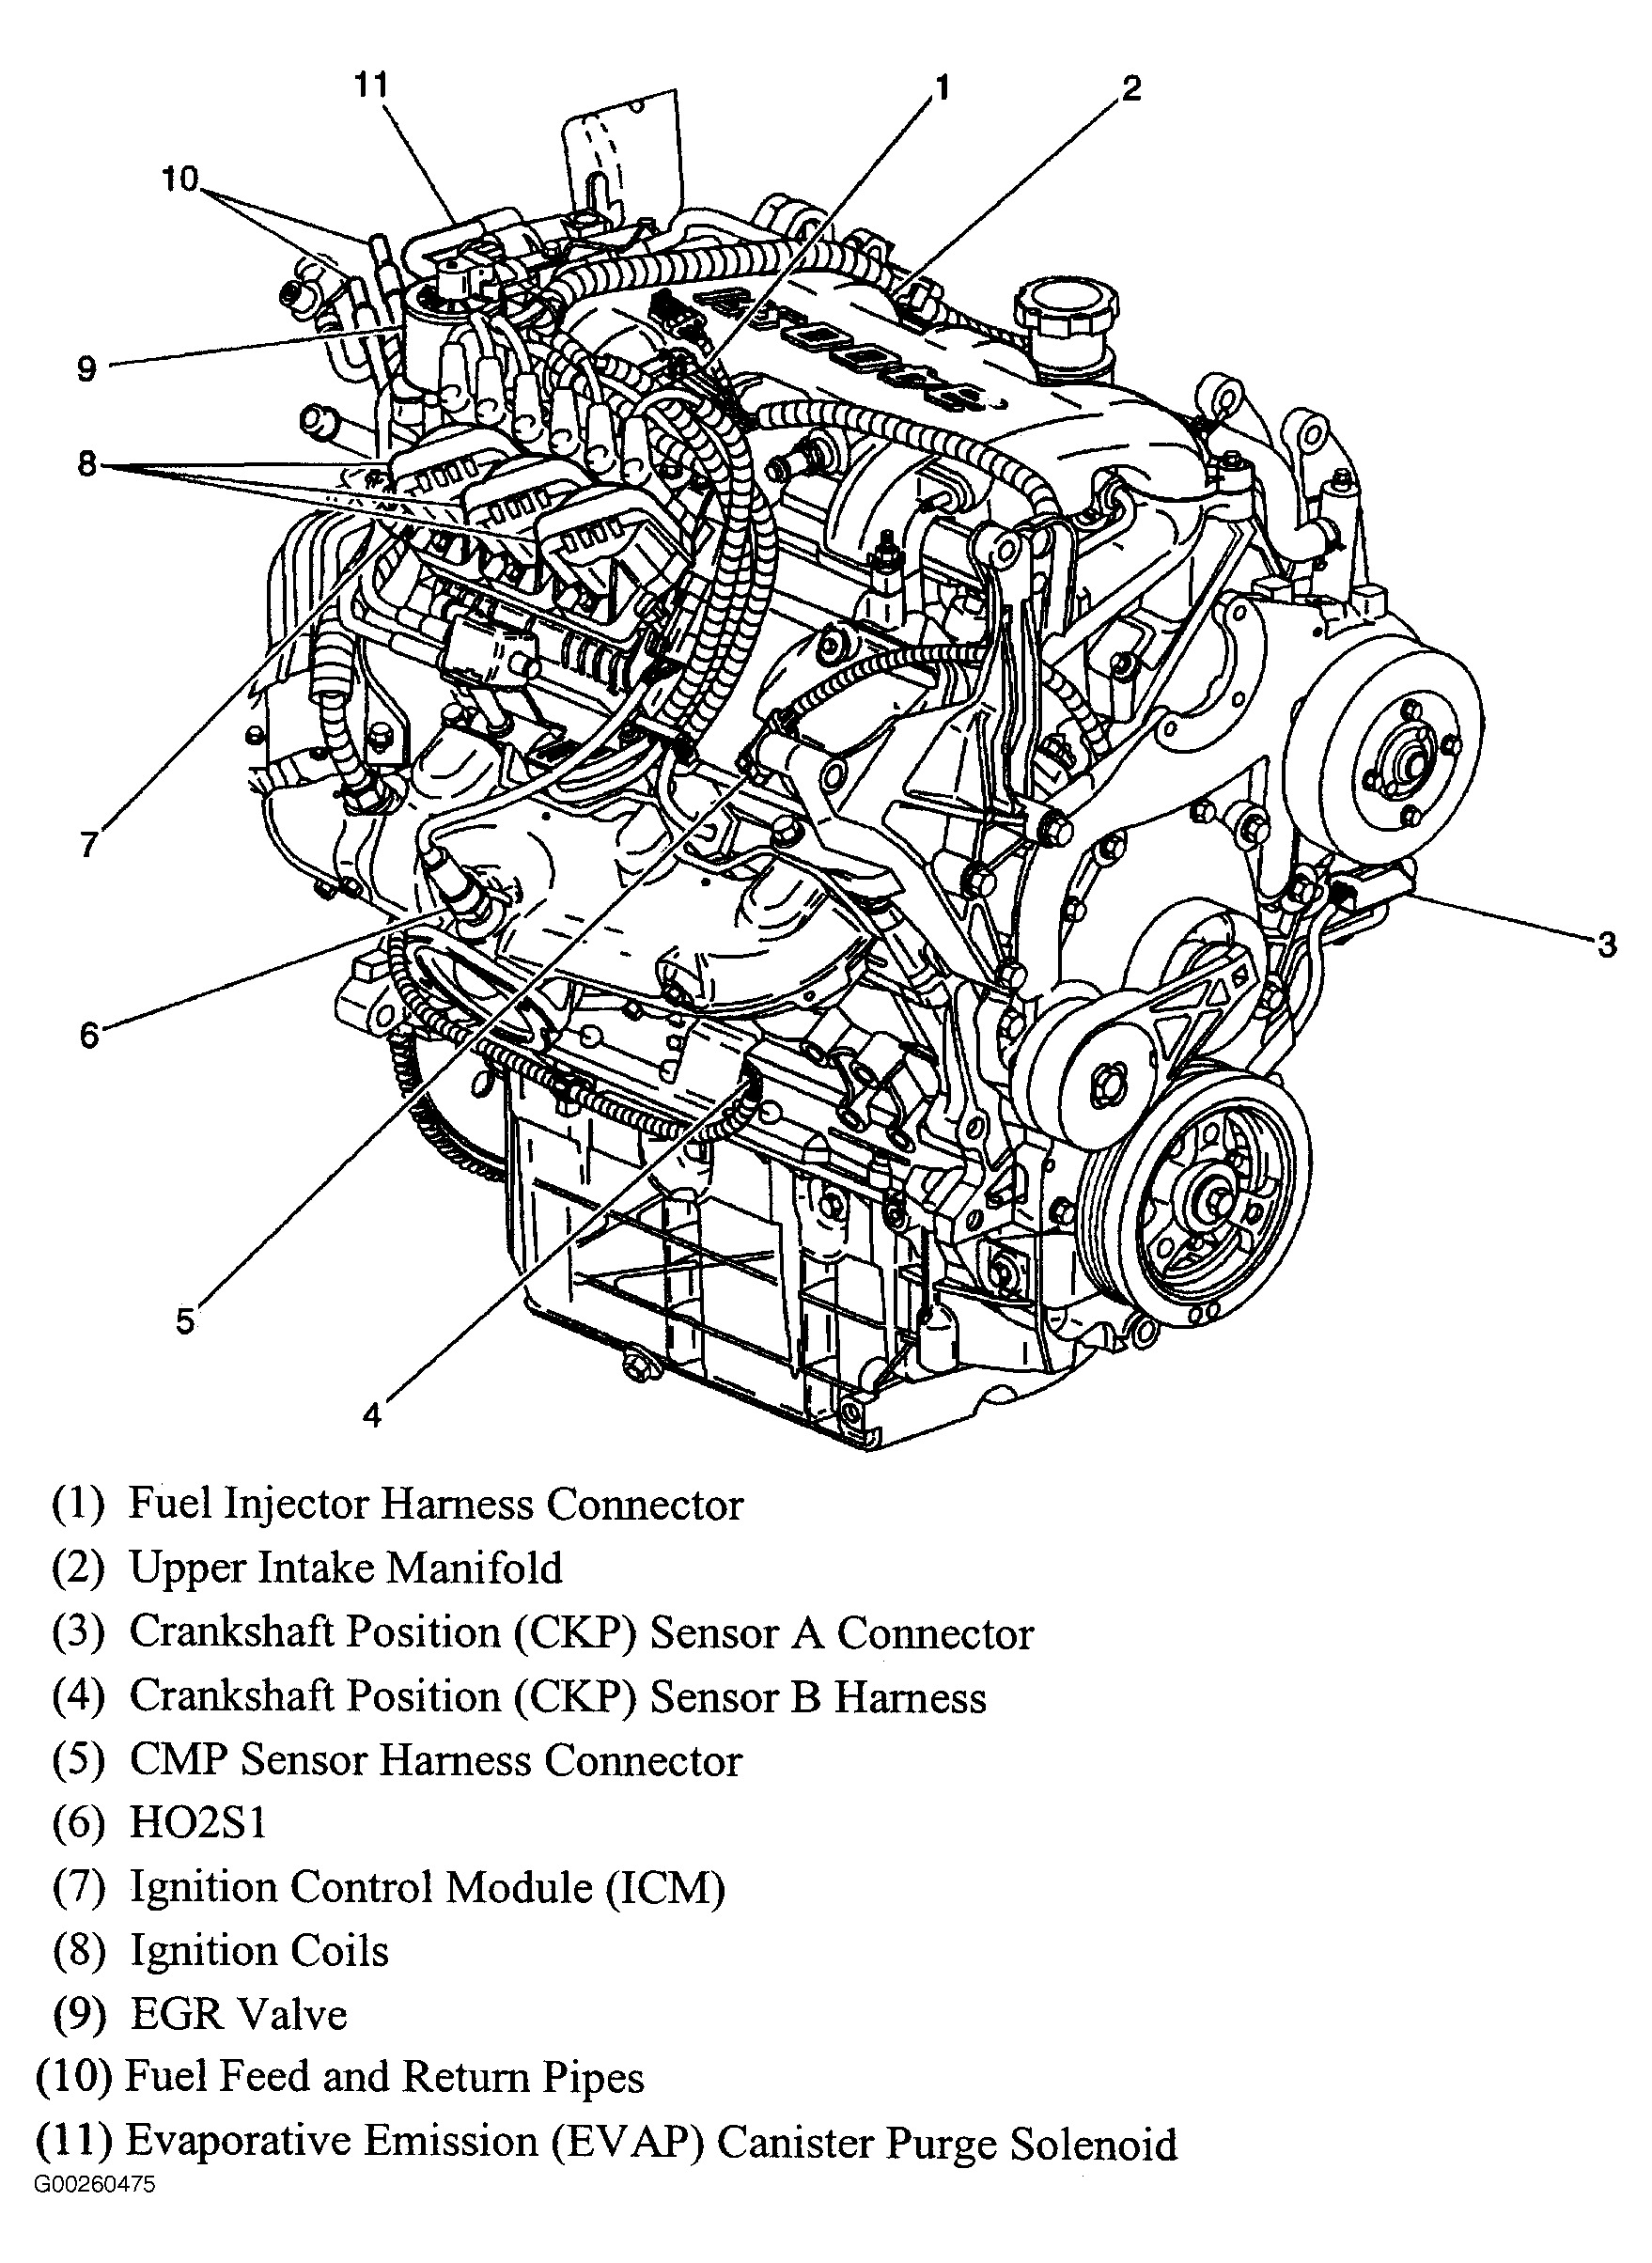 2005 Chevrolet Venture Crankshaft and Camshaft Locations